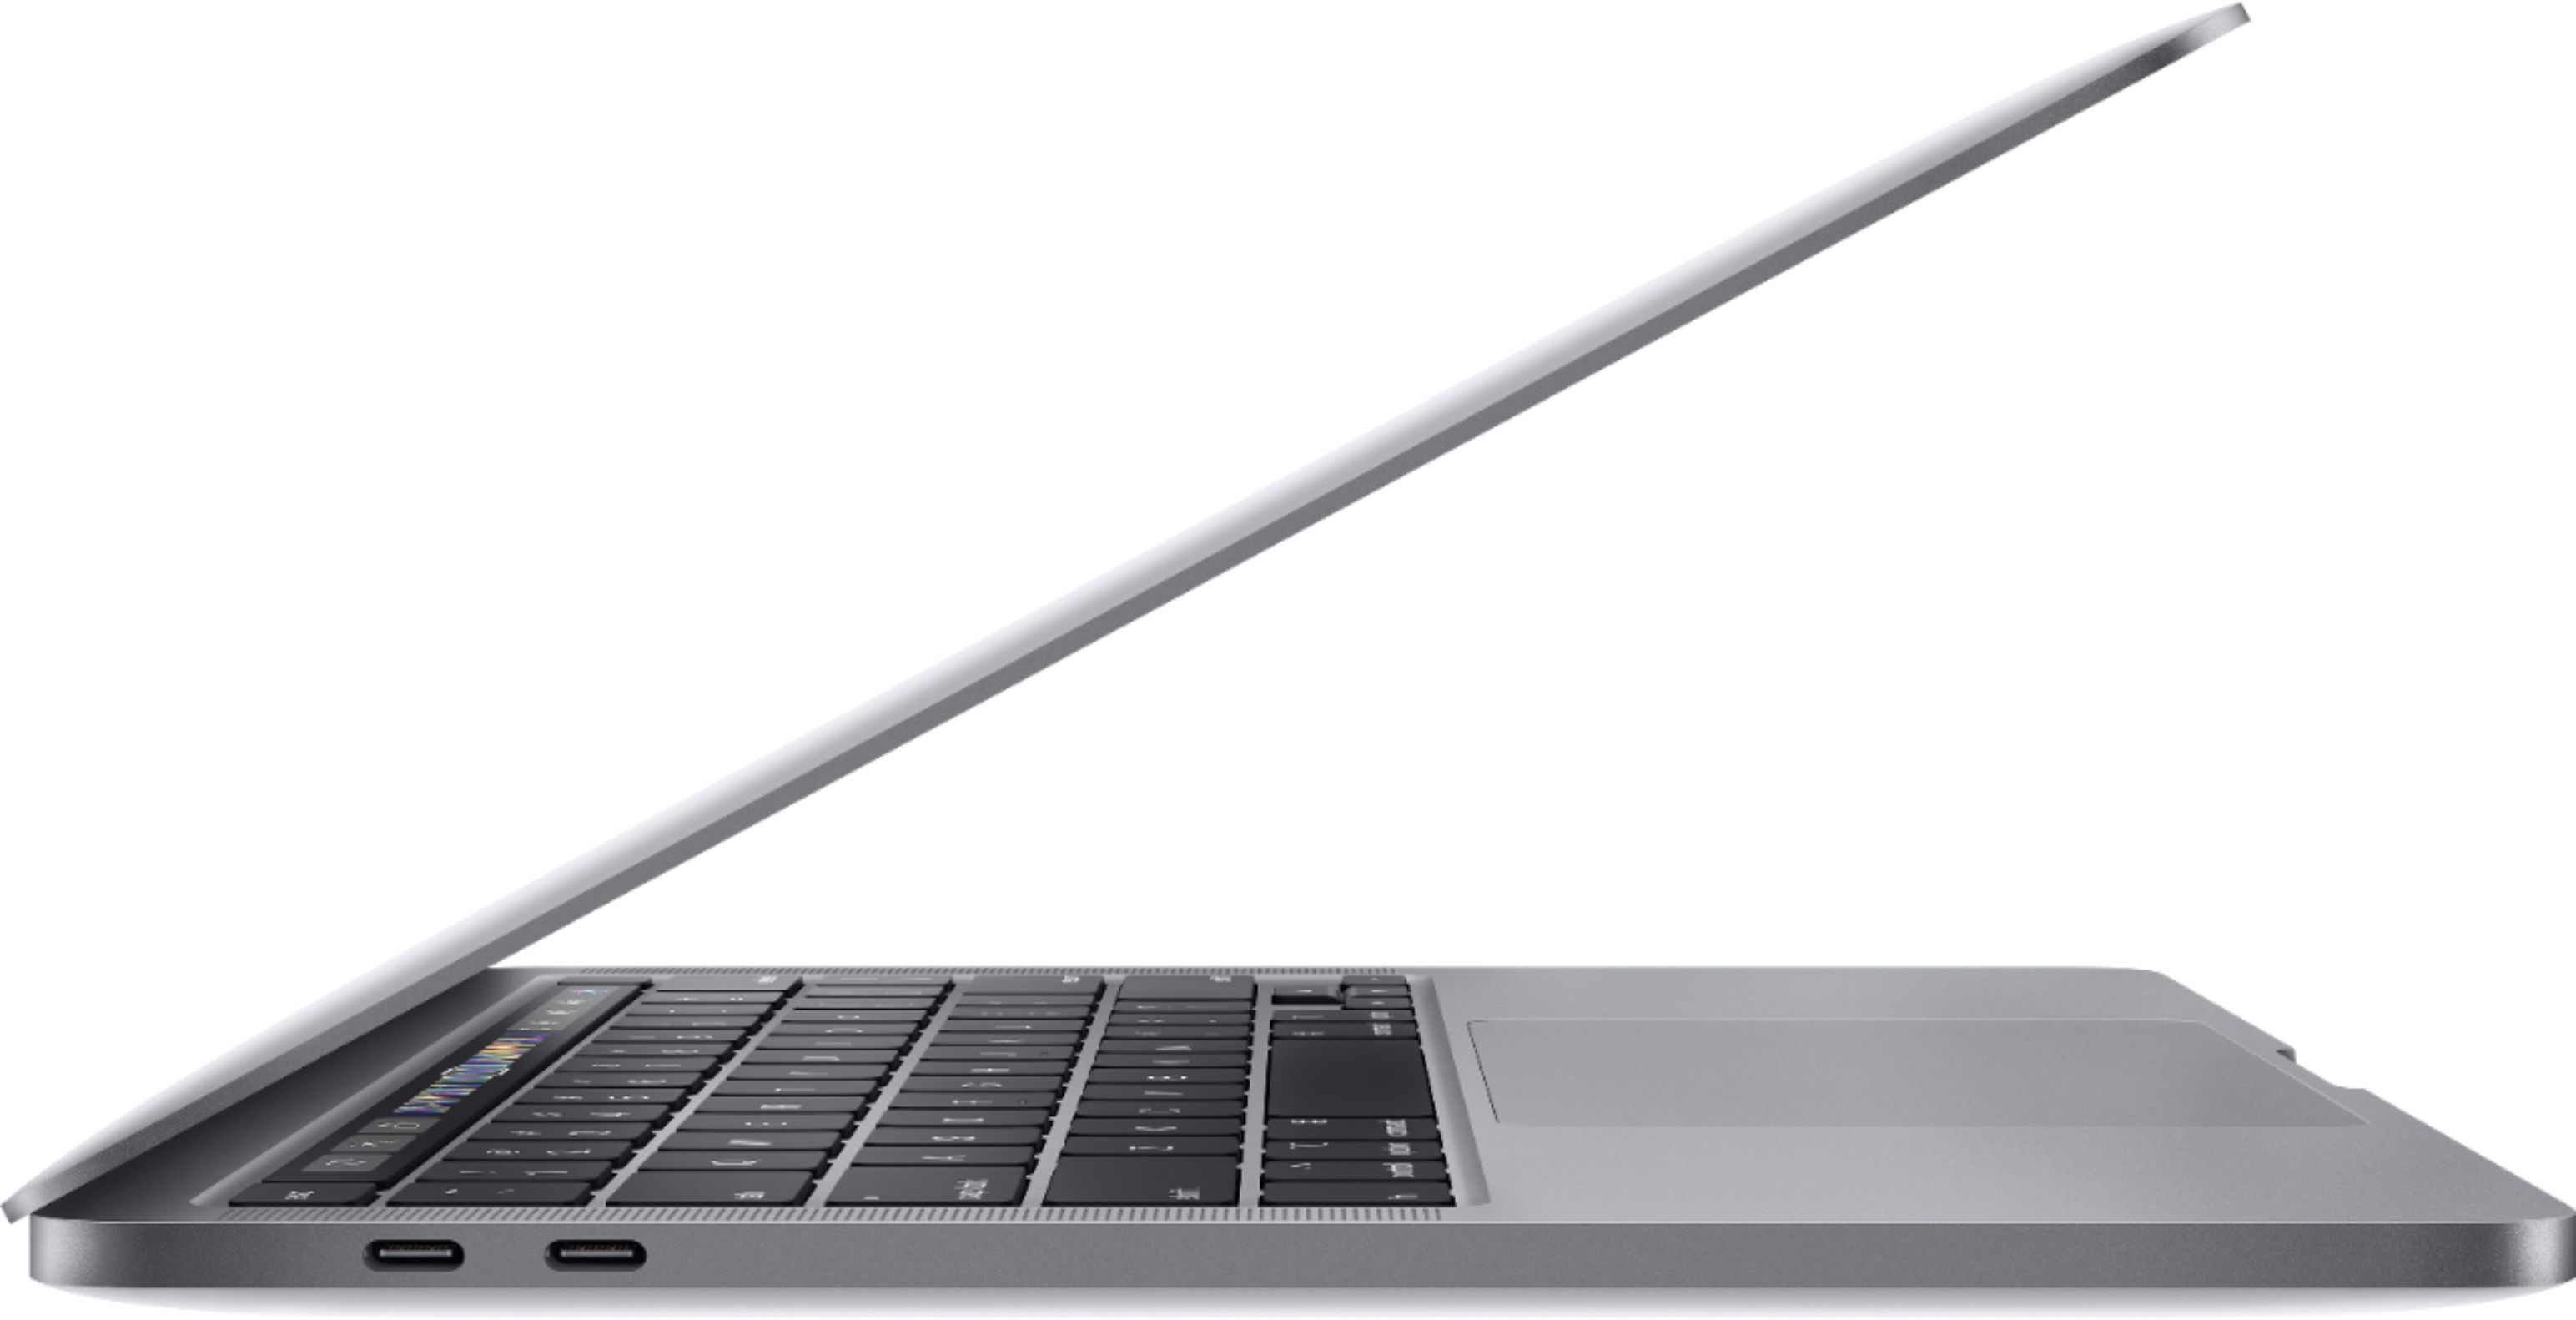 """Alt View Zoom 11. Apple - MacBook Pro - 13"""" Display with Touch Bar - Intel Core i5 - 16GB Memory - 512GB SSD (Latest Model) - Space Gray."""